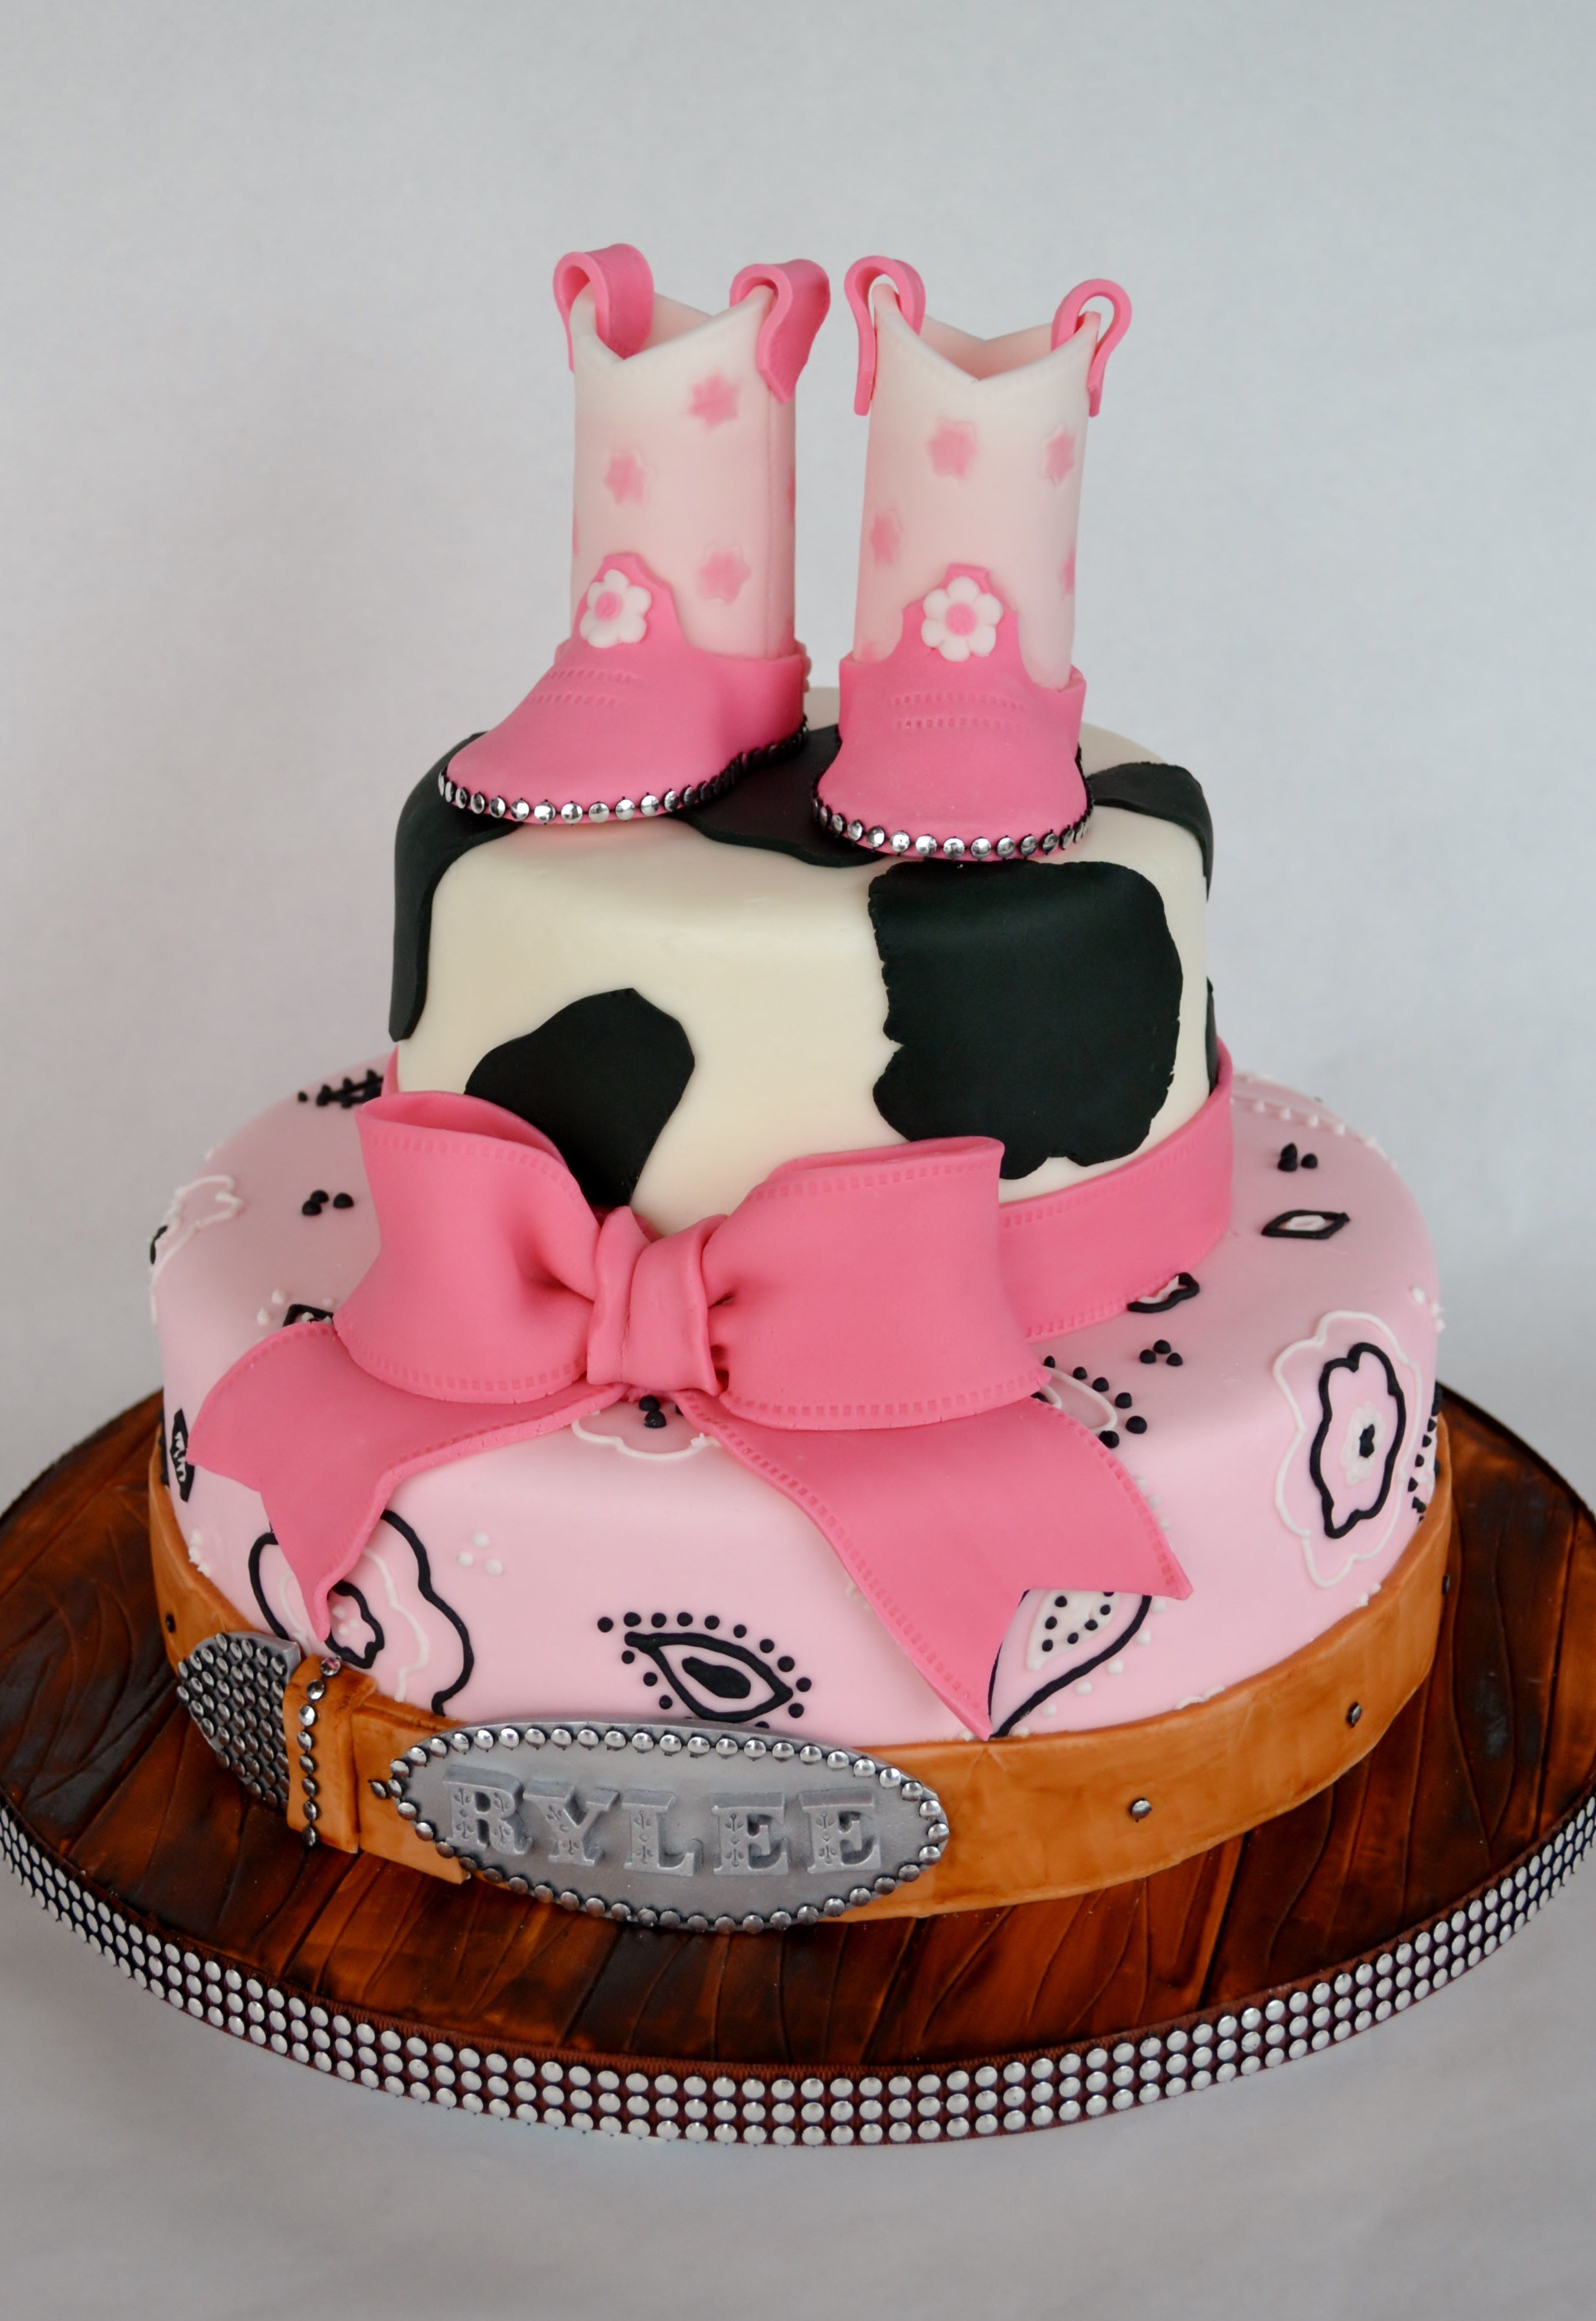 Cowgirl Birthday Decorations Cowgirl Cake Combined Favorite But Something Is Off With The